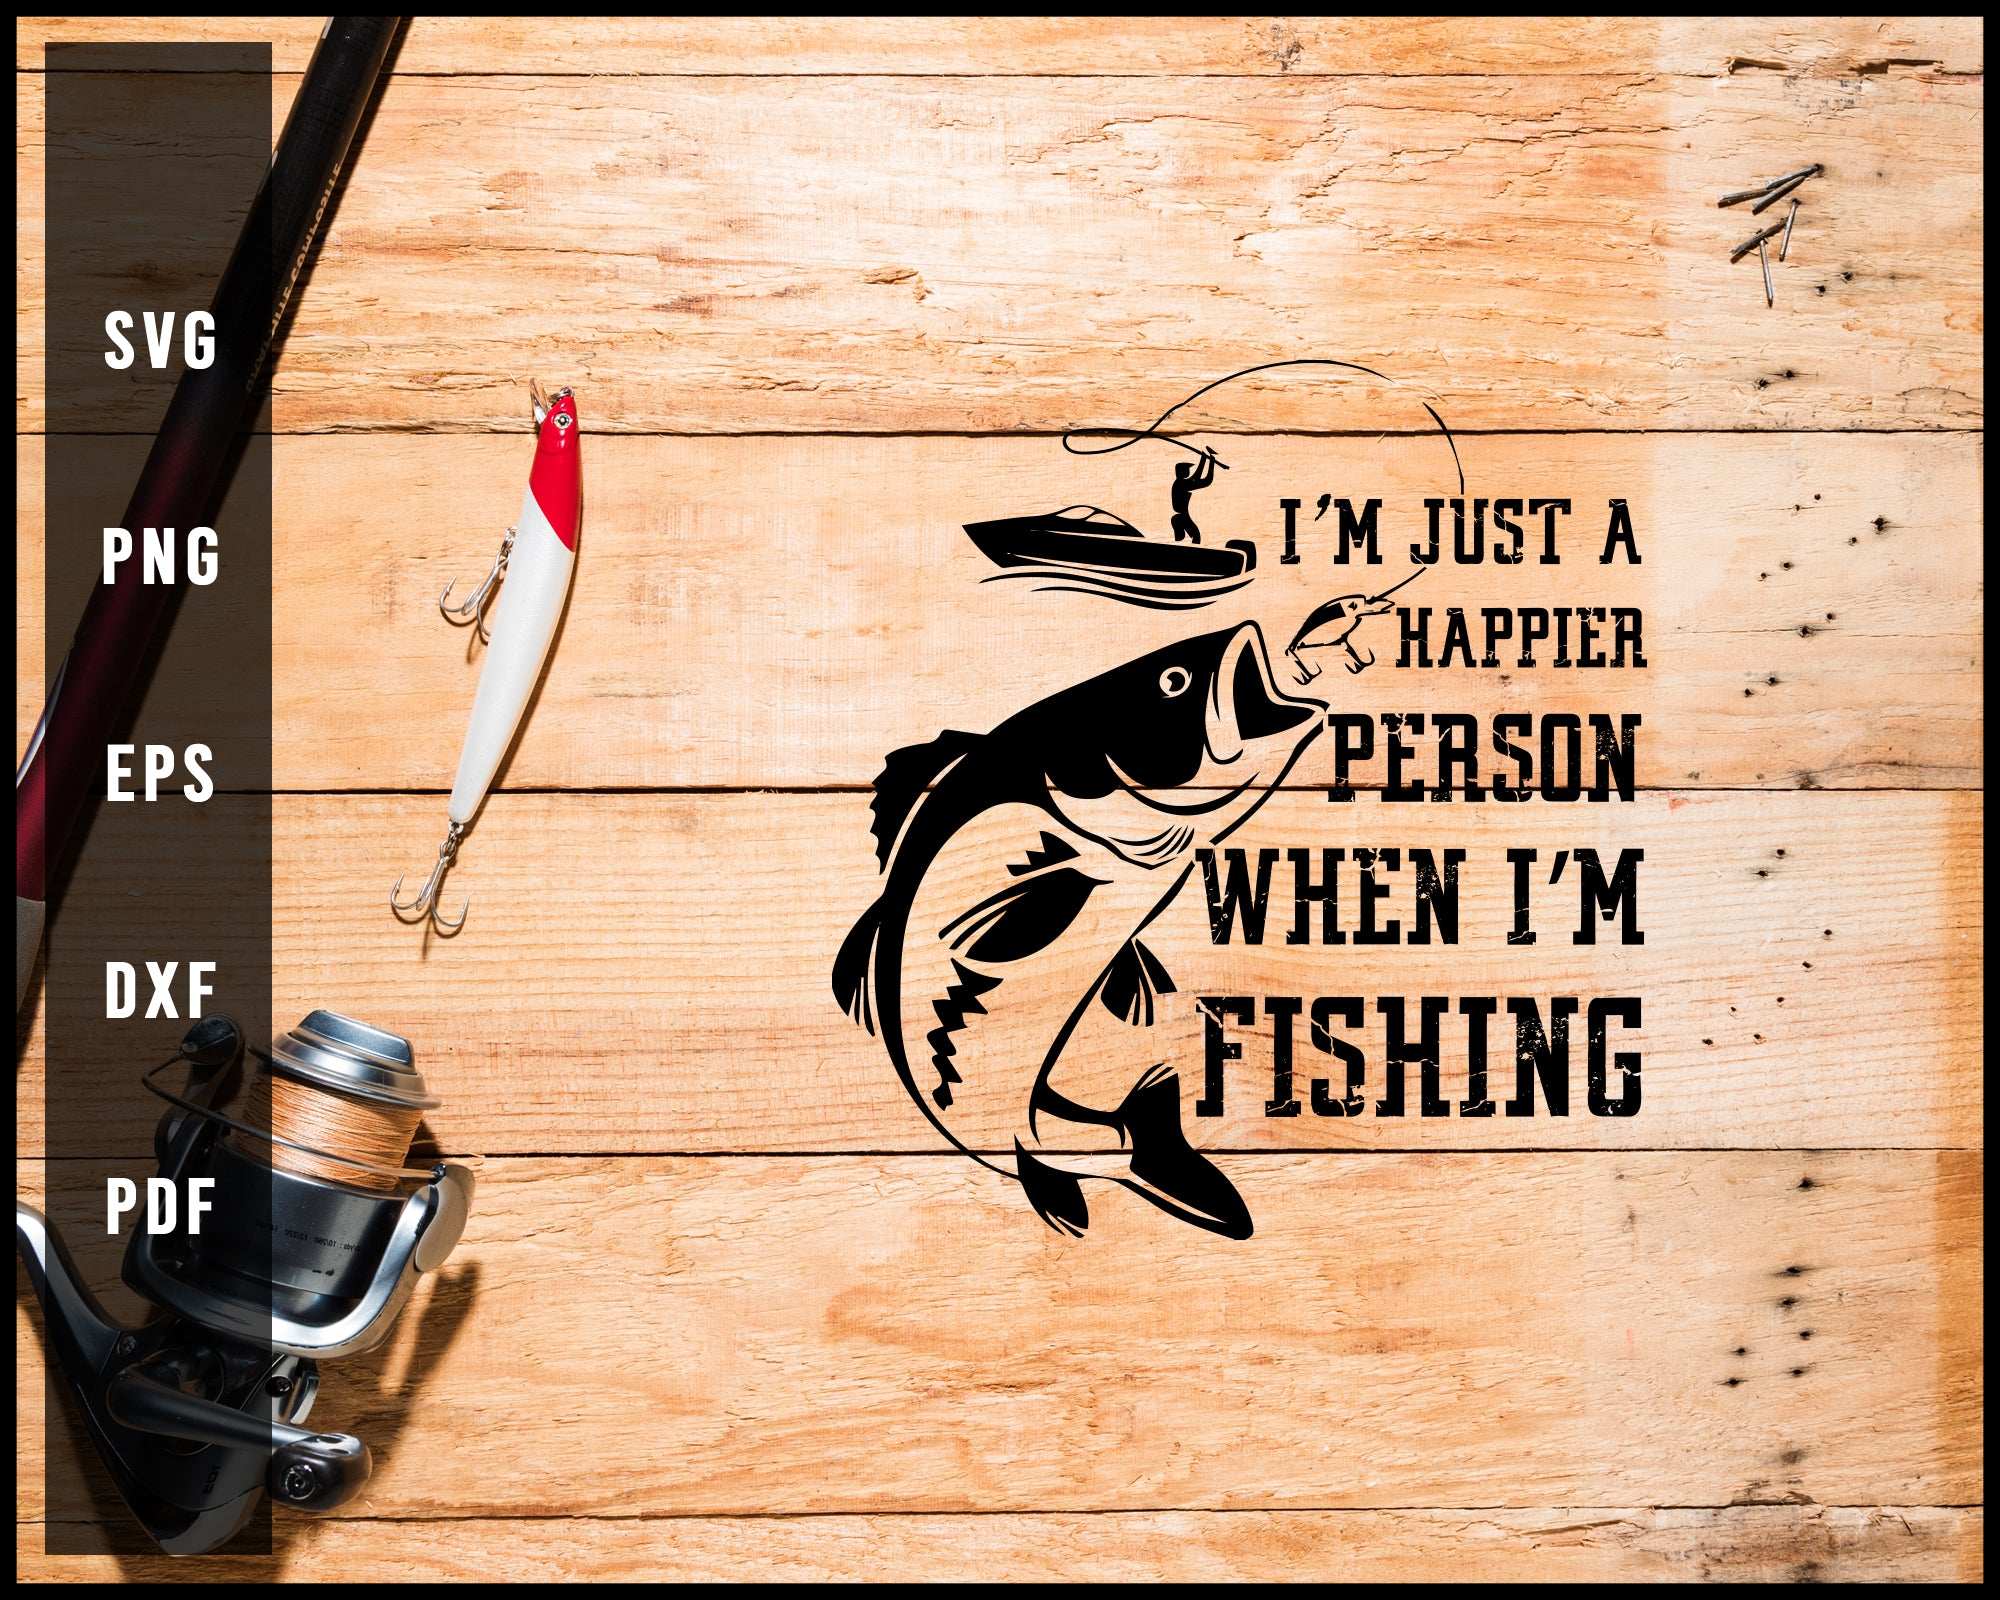 I'm Just A Happier Person When I'm Fishing svg png Silhouette Designs For Cricut And Printable Files